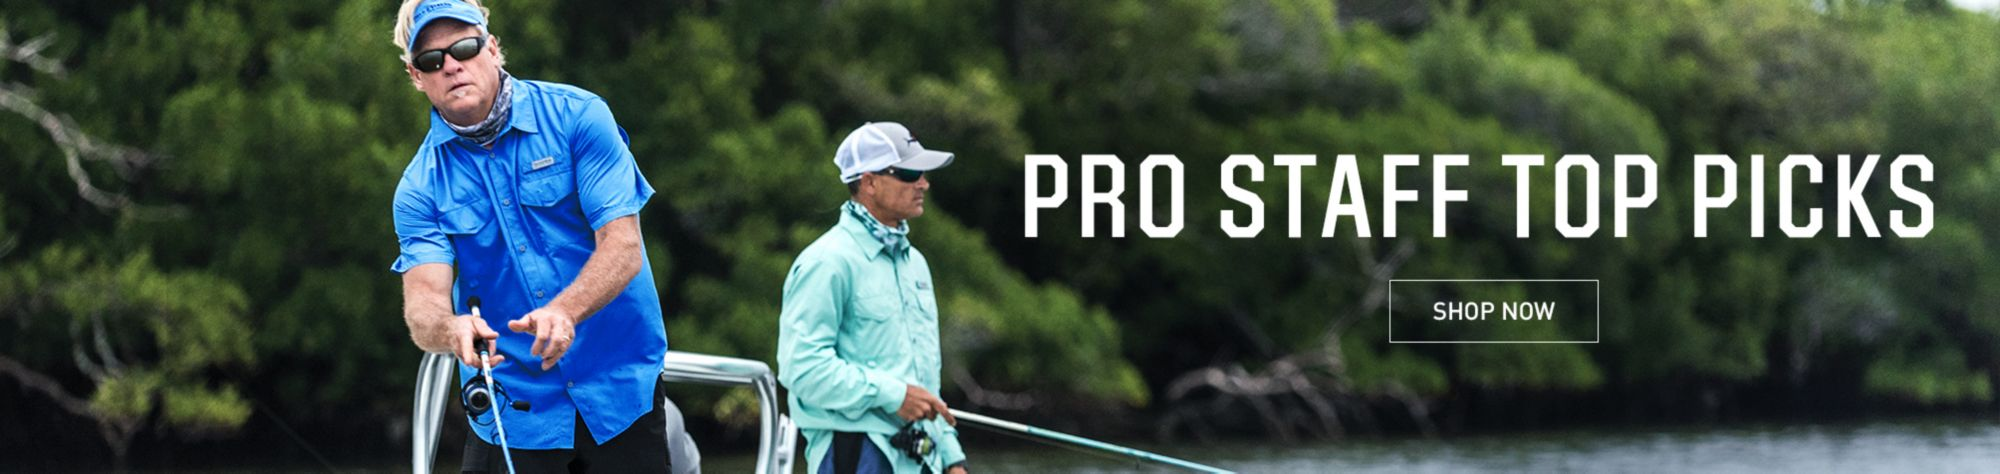 Pro Staff Top Picks